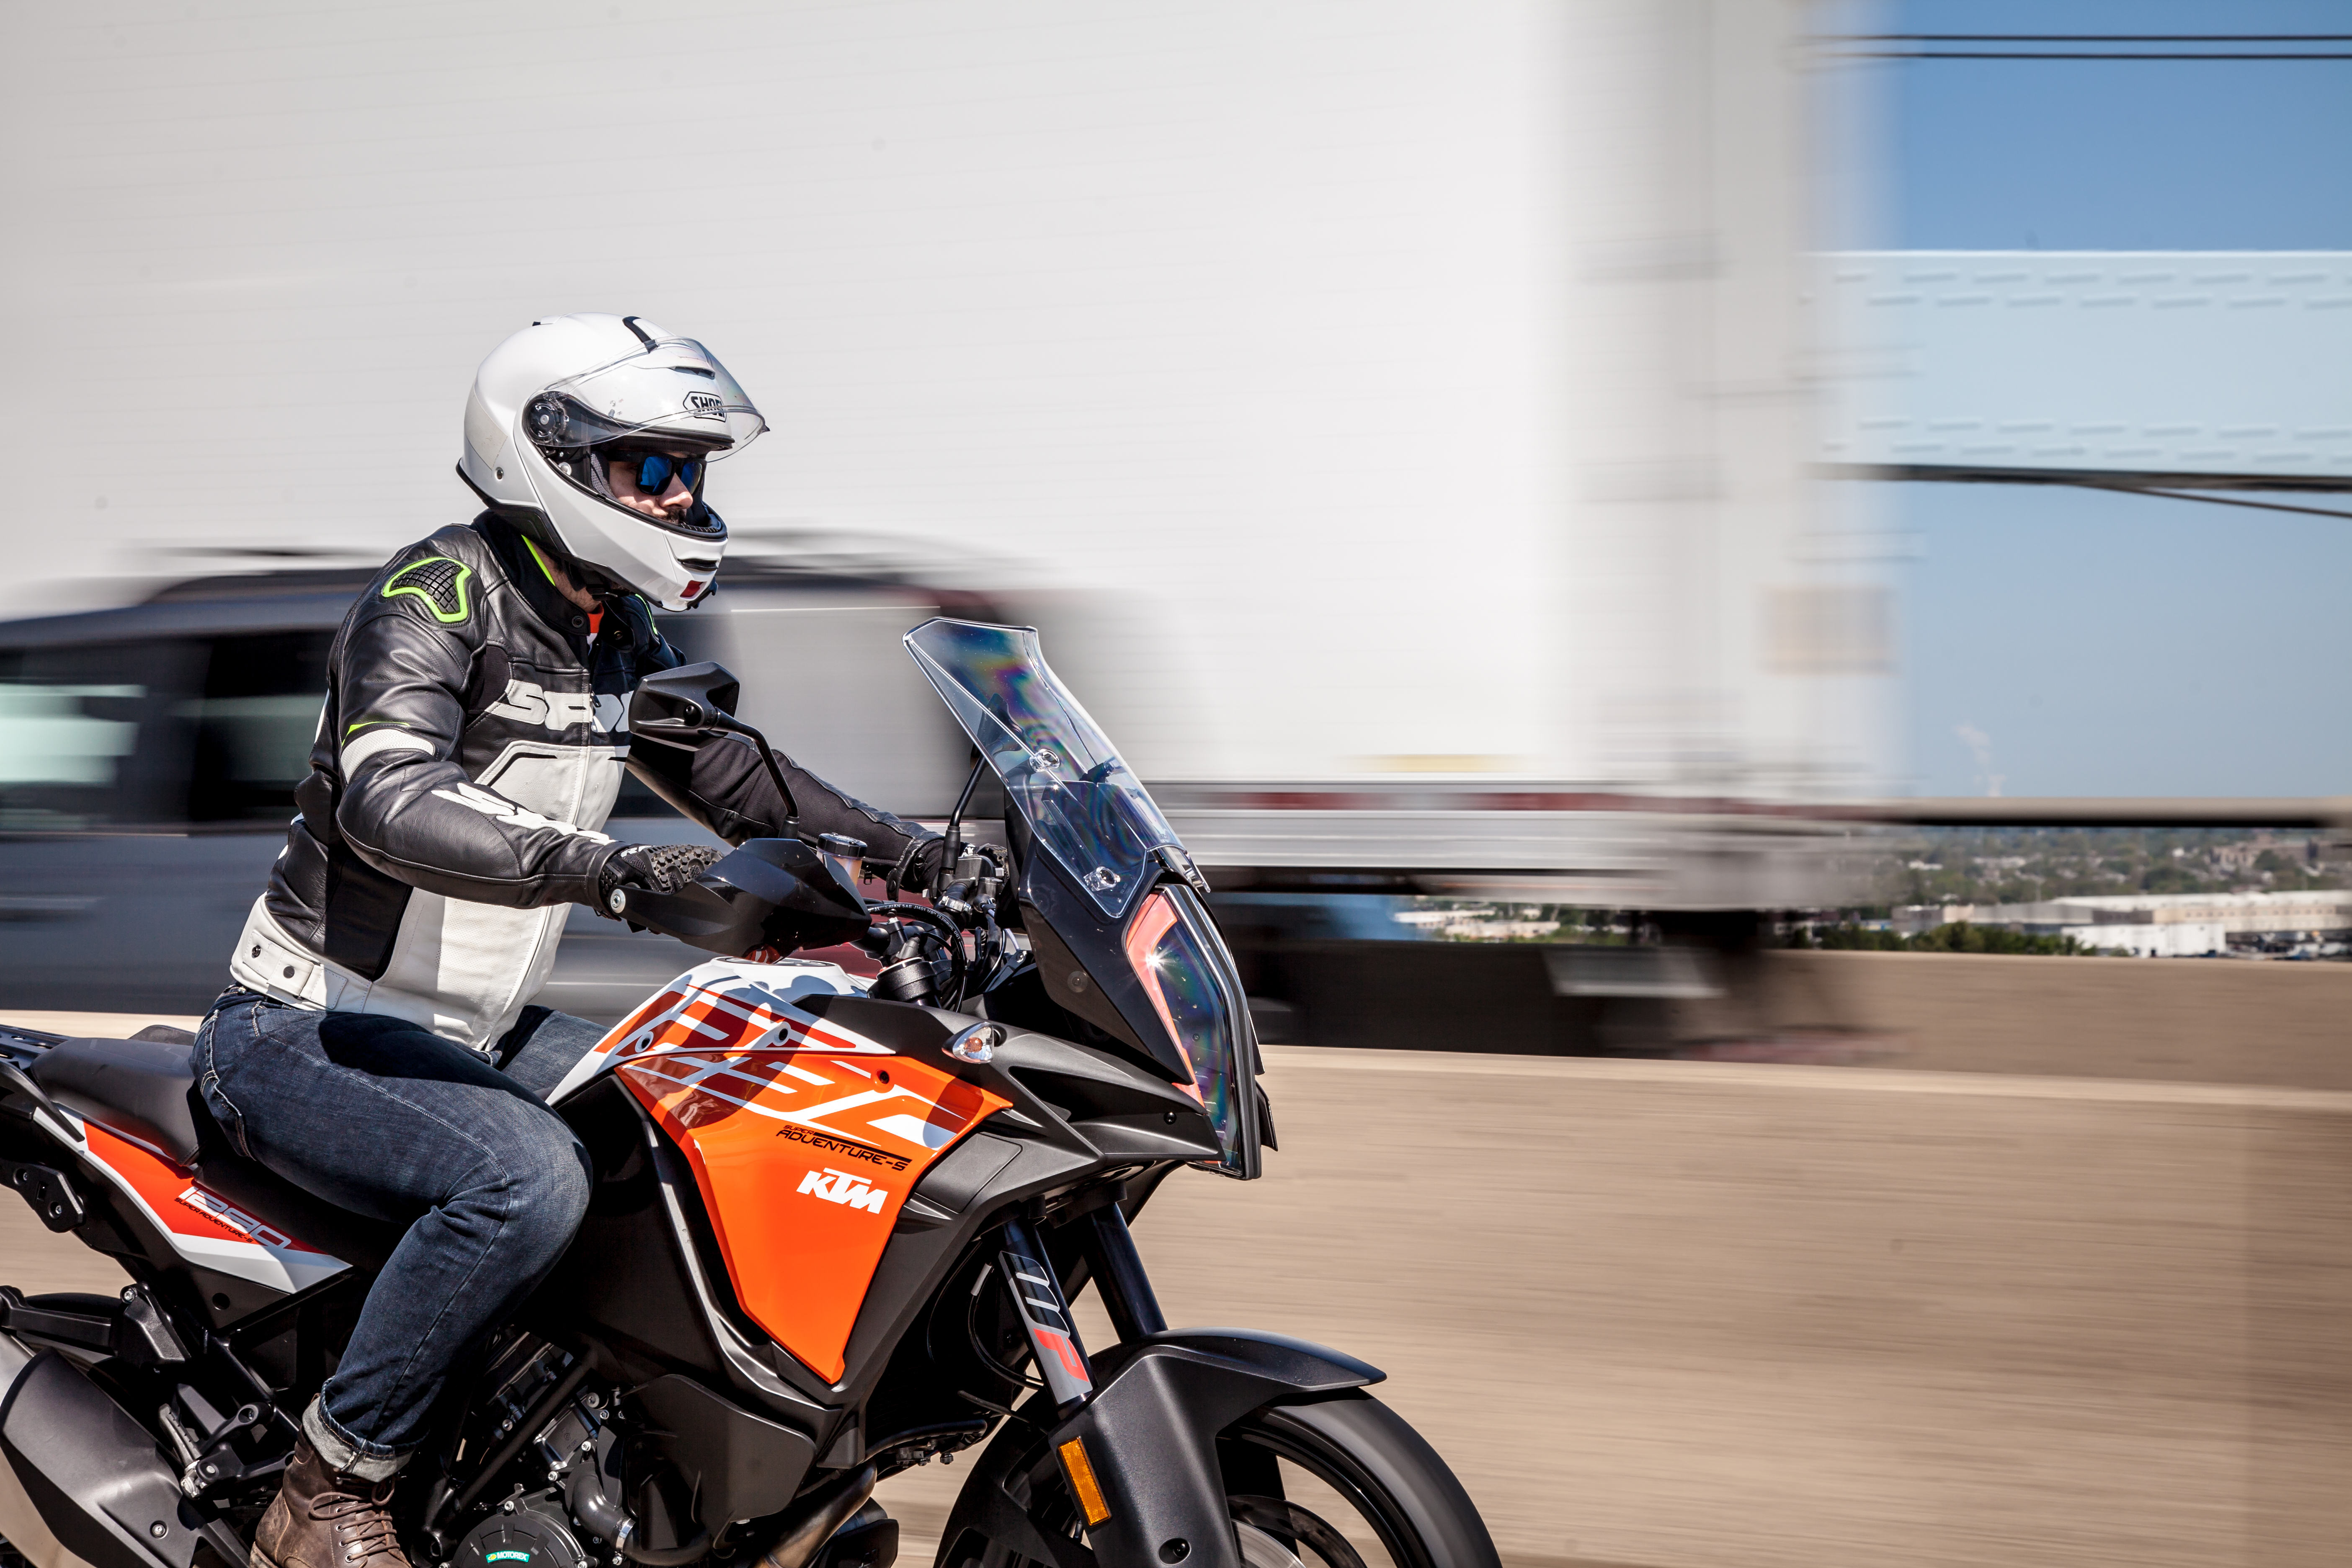 2018 KTM 1290 Super Adventure S first ride review - RevZilla